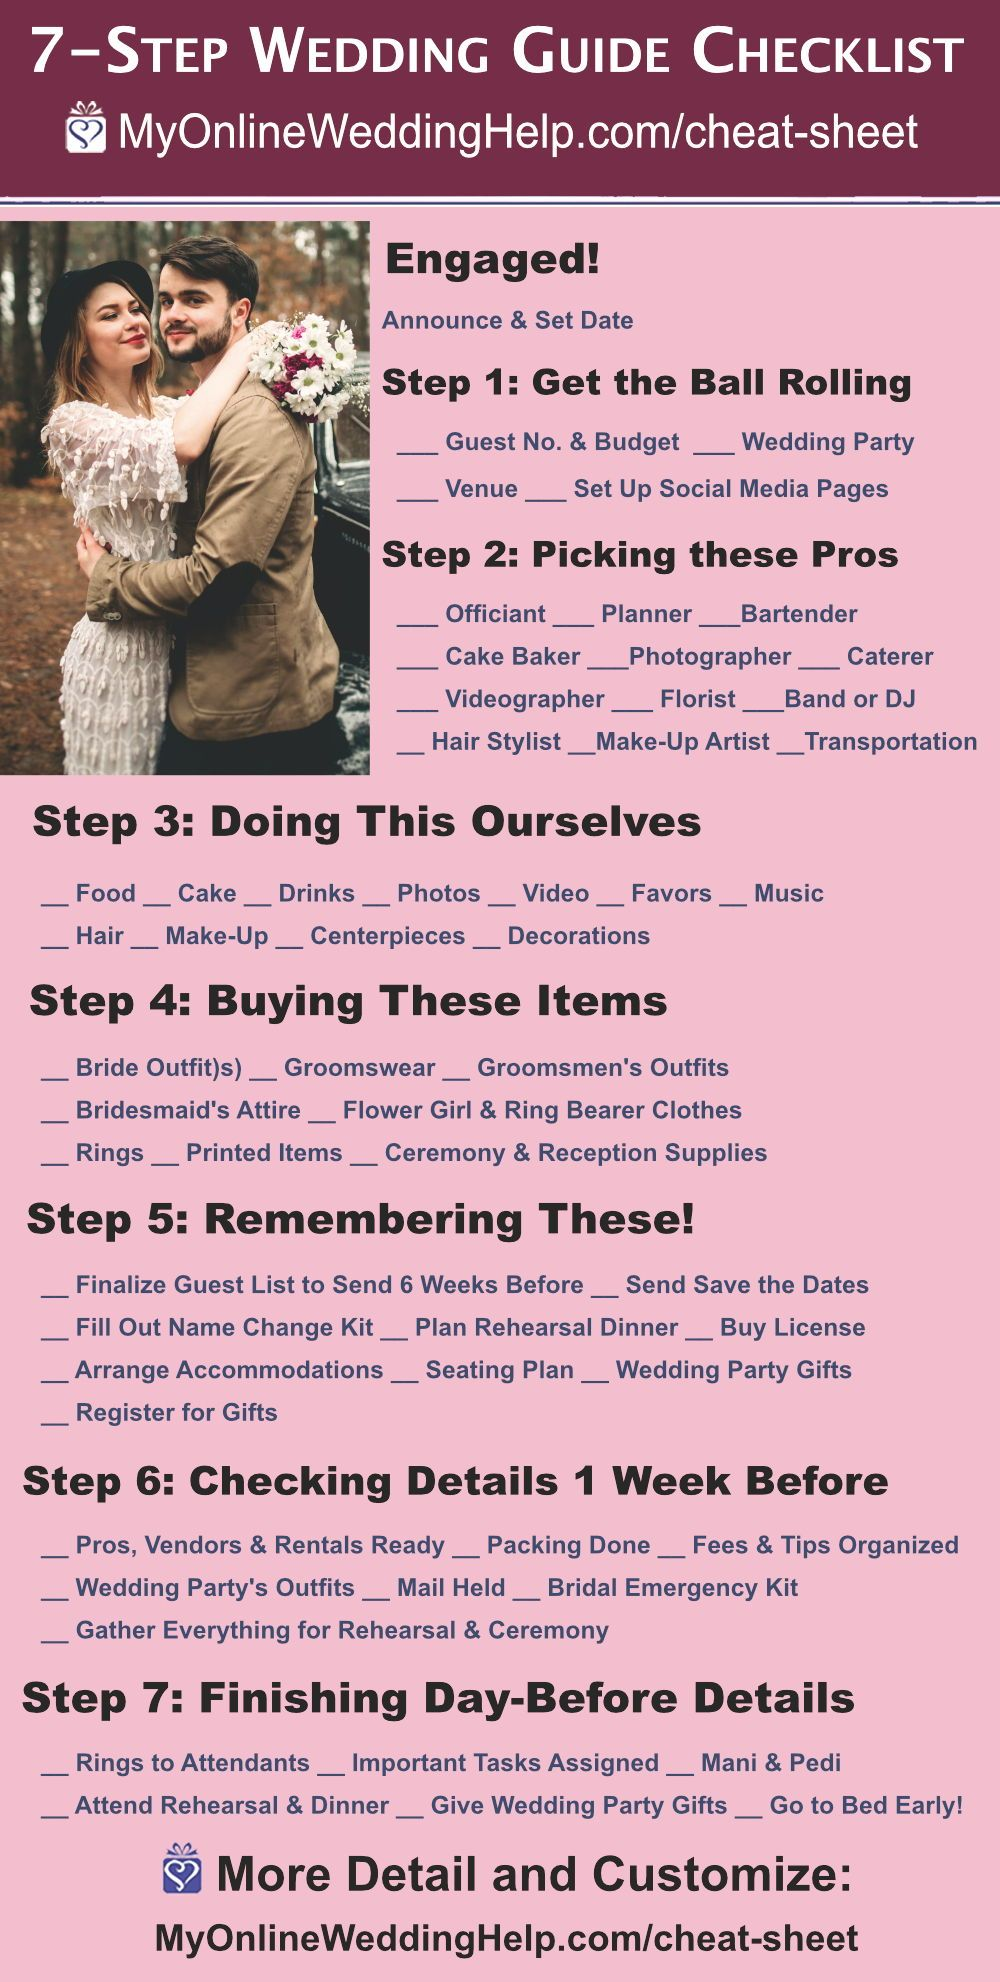 7 Step Wedding Guide Checklist And Printable Cheat Sheet Wedding Guide Checklist Wedding Guide Wedding Planning Checklist Printable